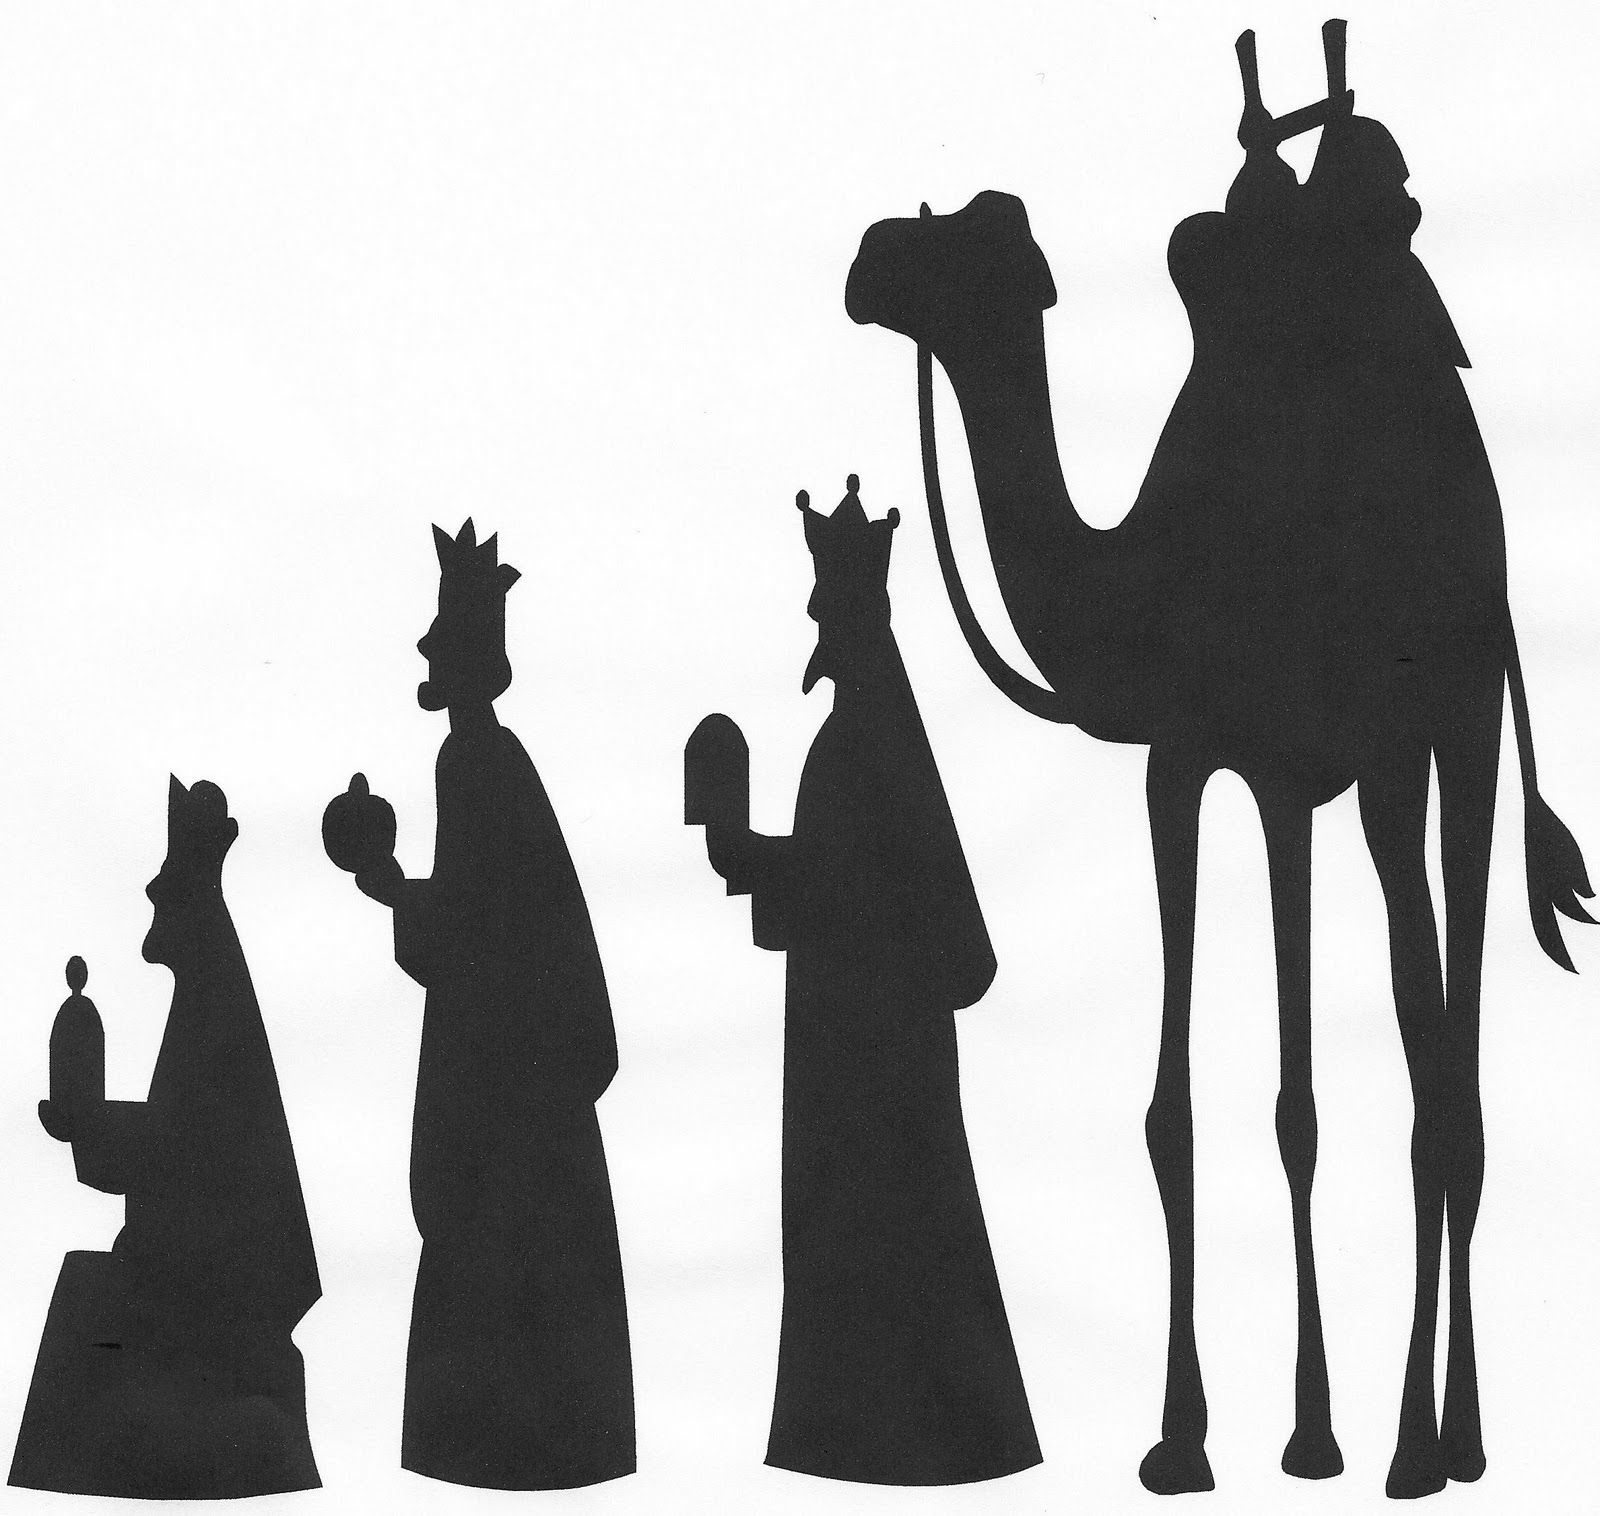 17 Best images about Nativity Scene Silhouette | Tis the season ...